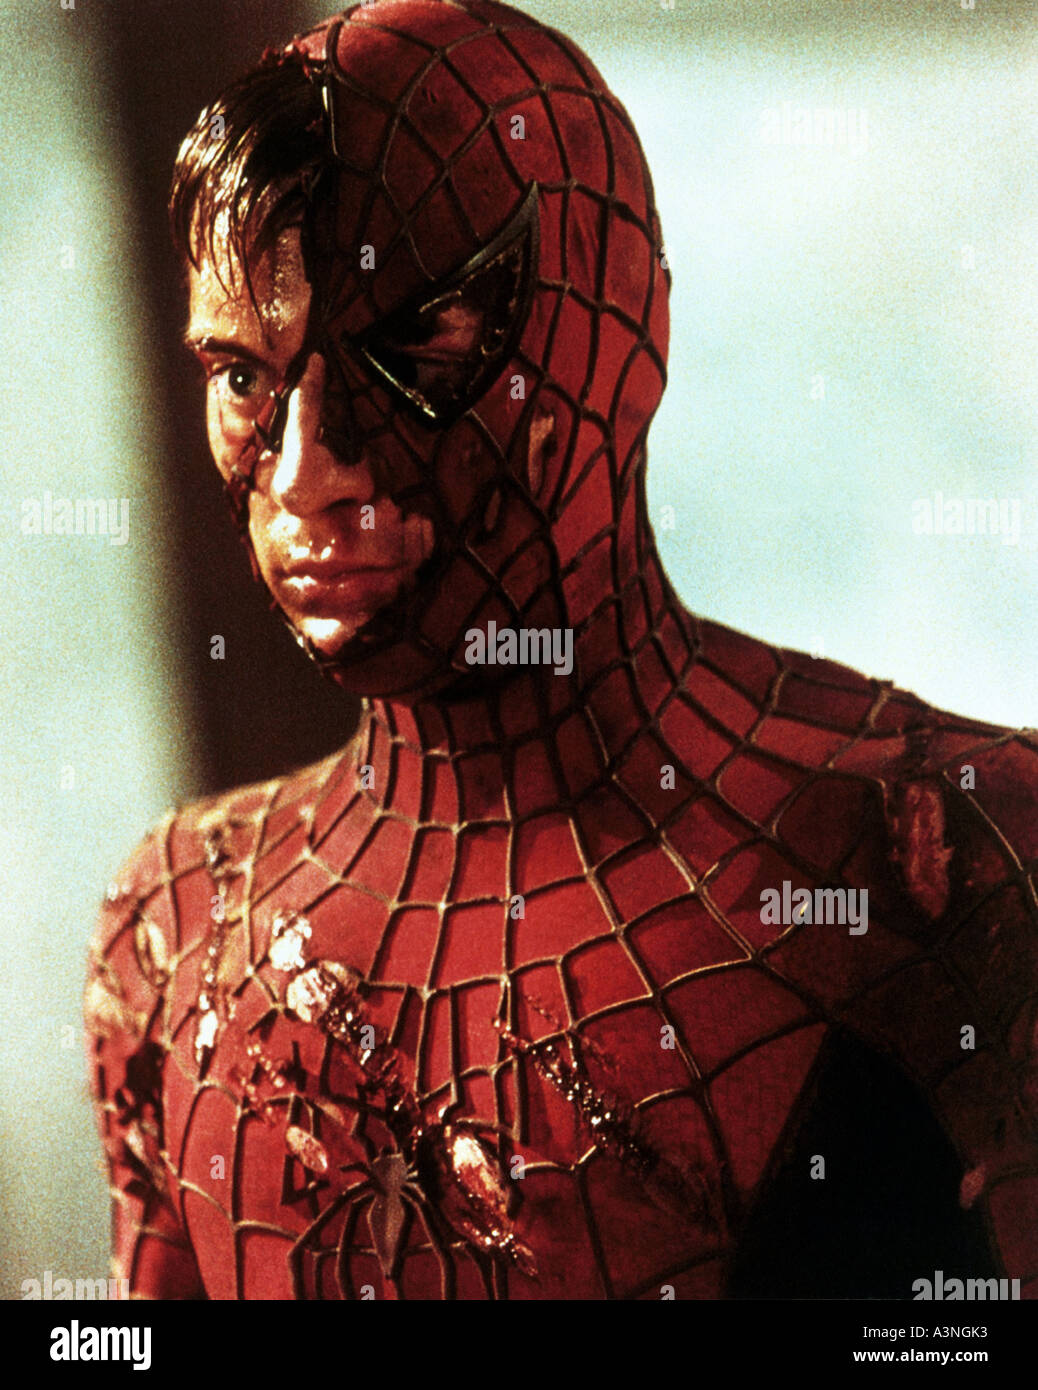 sandman spiderman actor